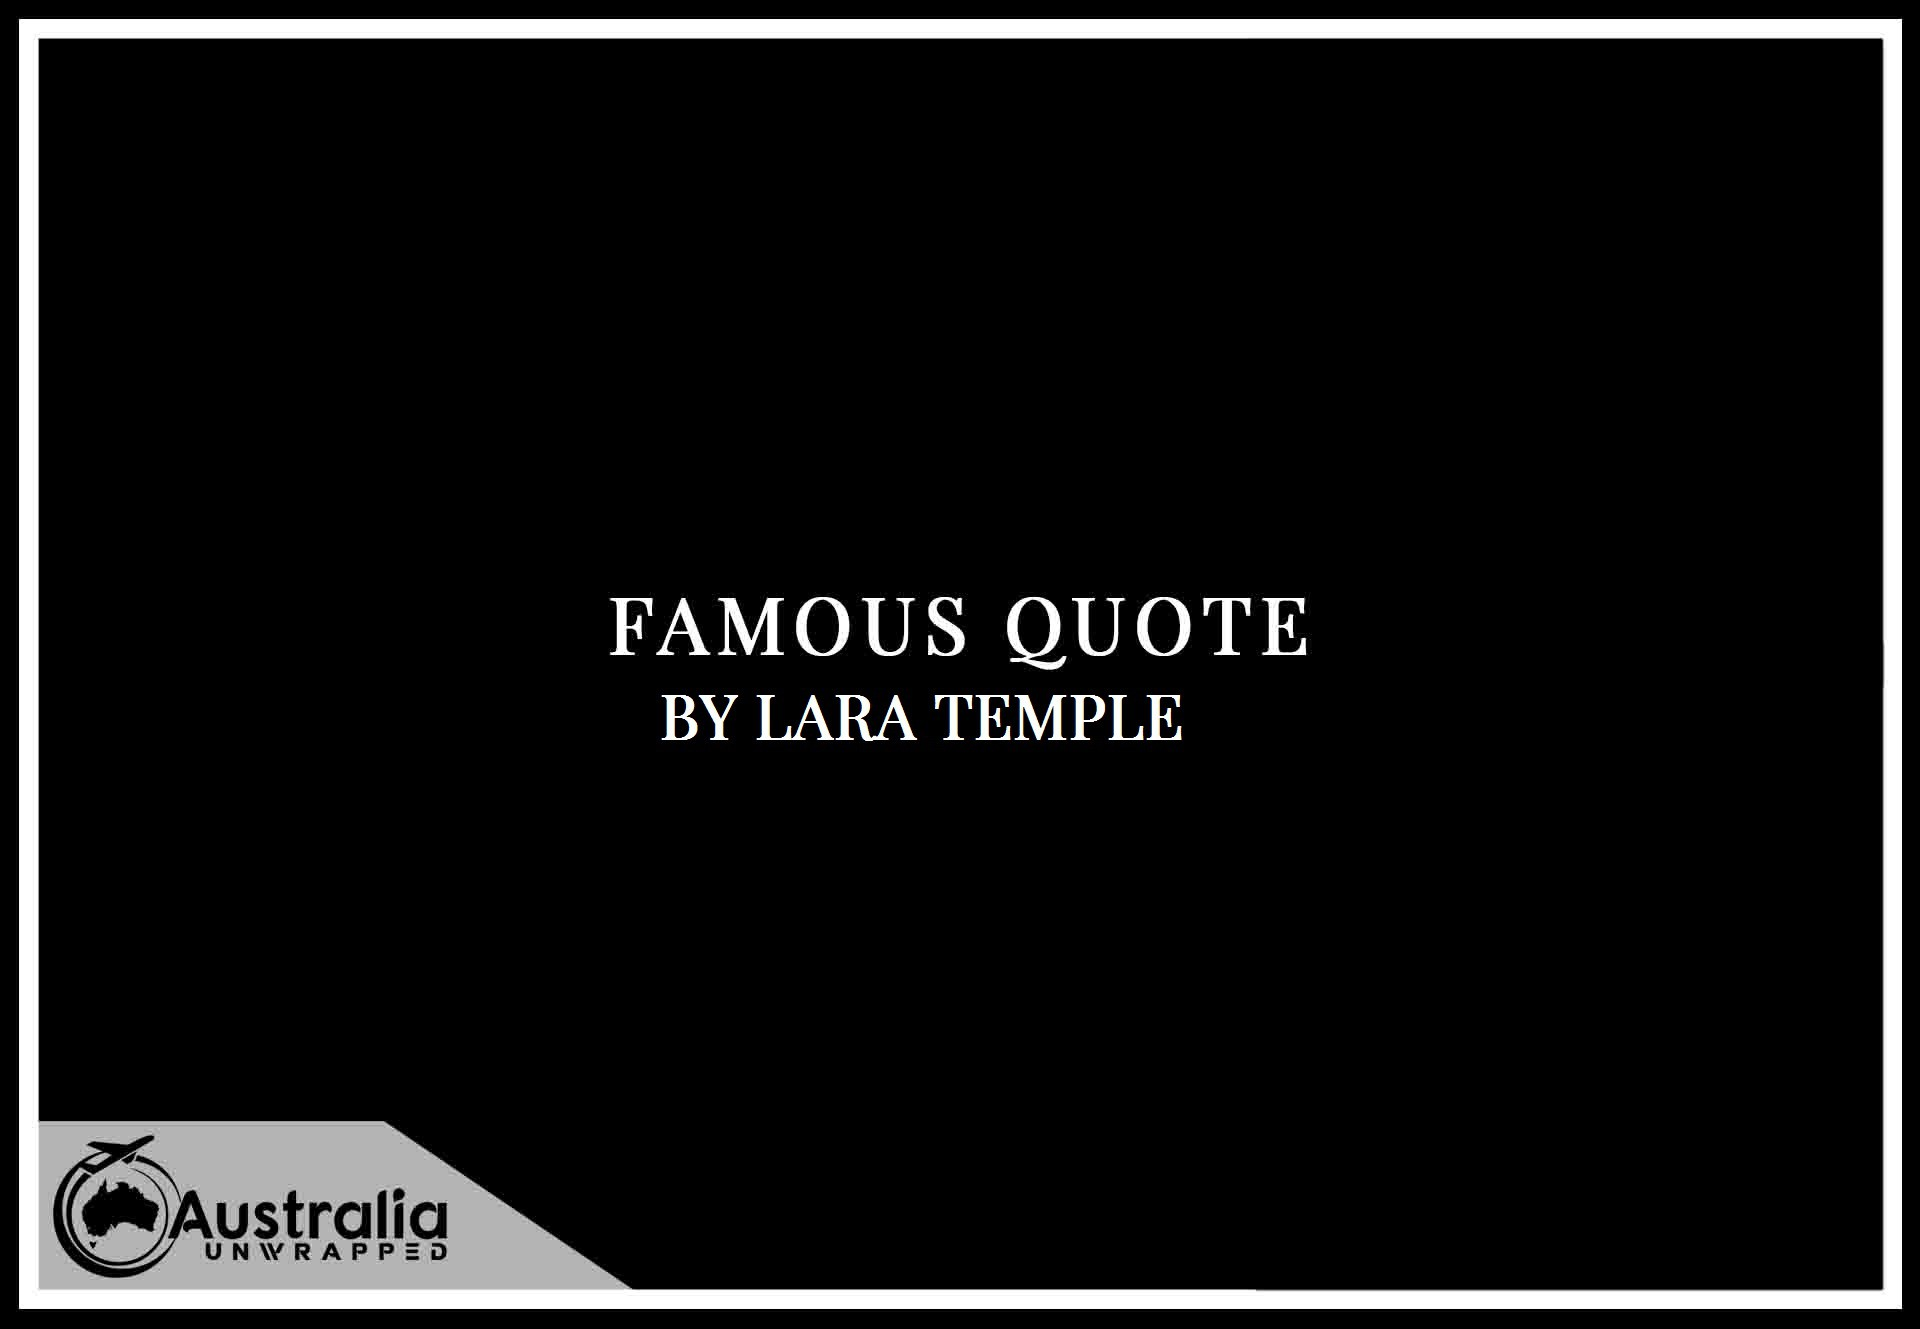 Lara Temple's Top 1 Popular and Famous Quotes